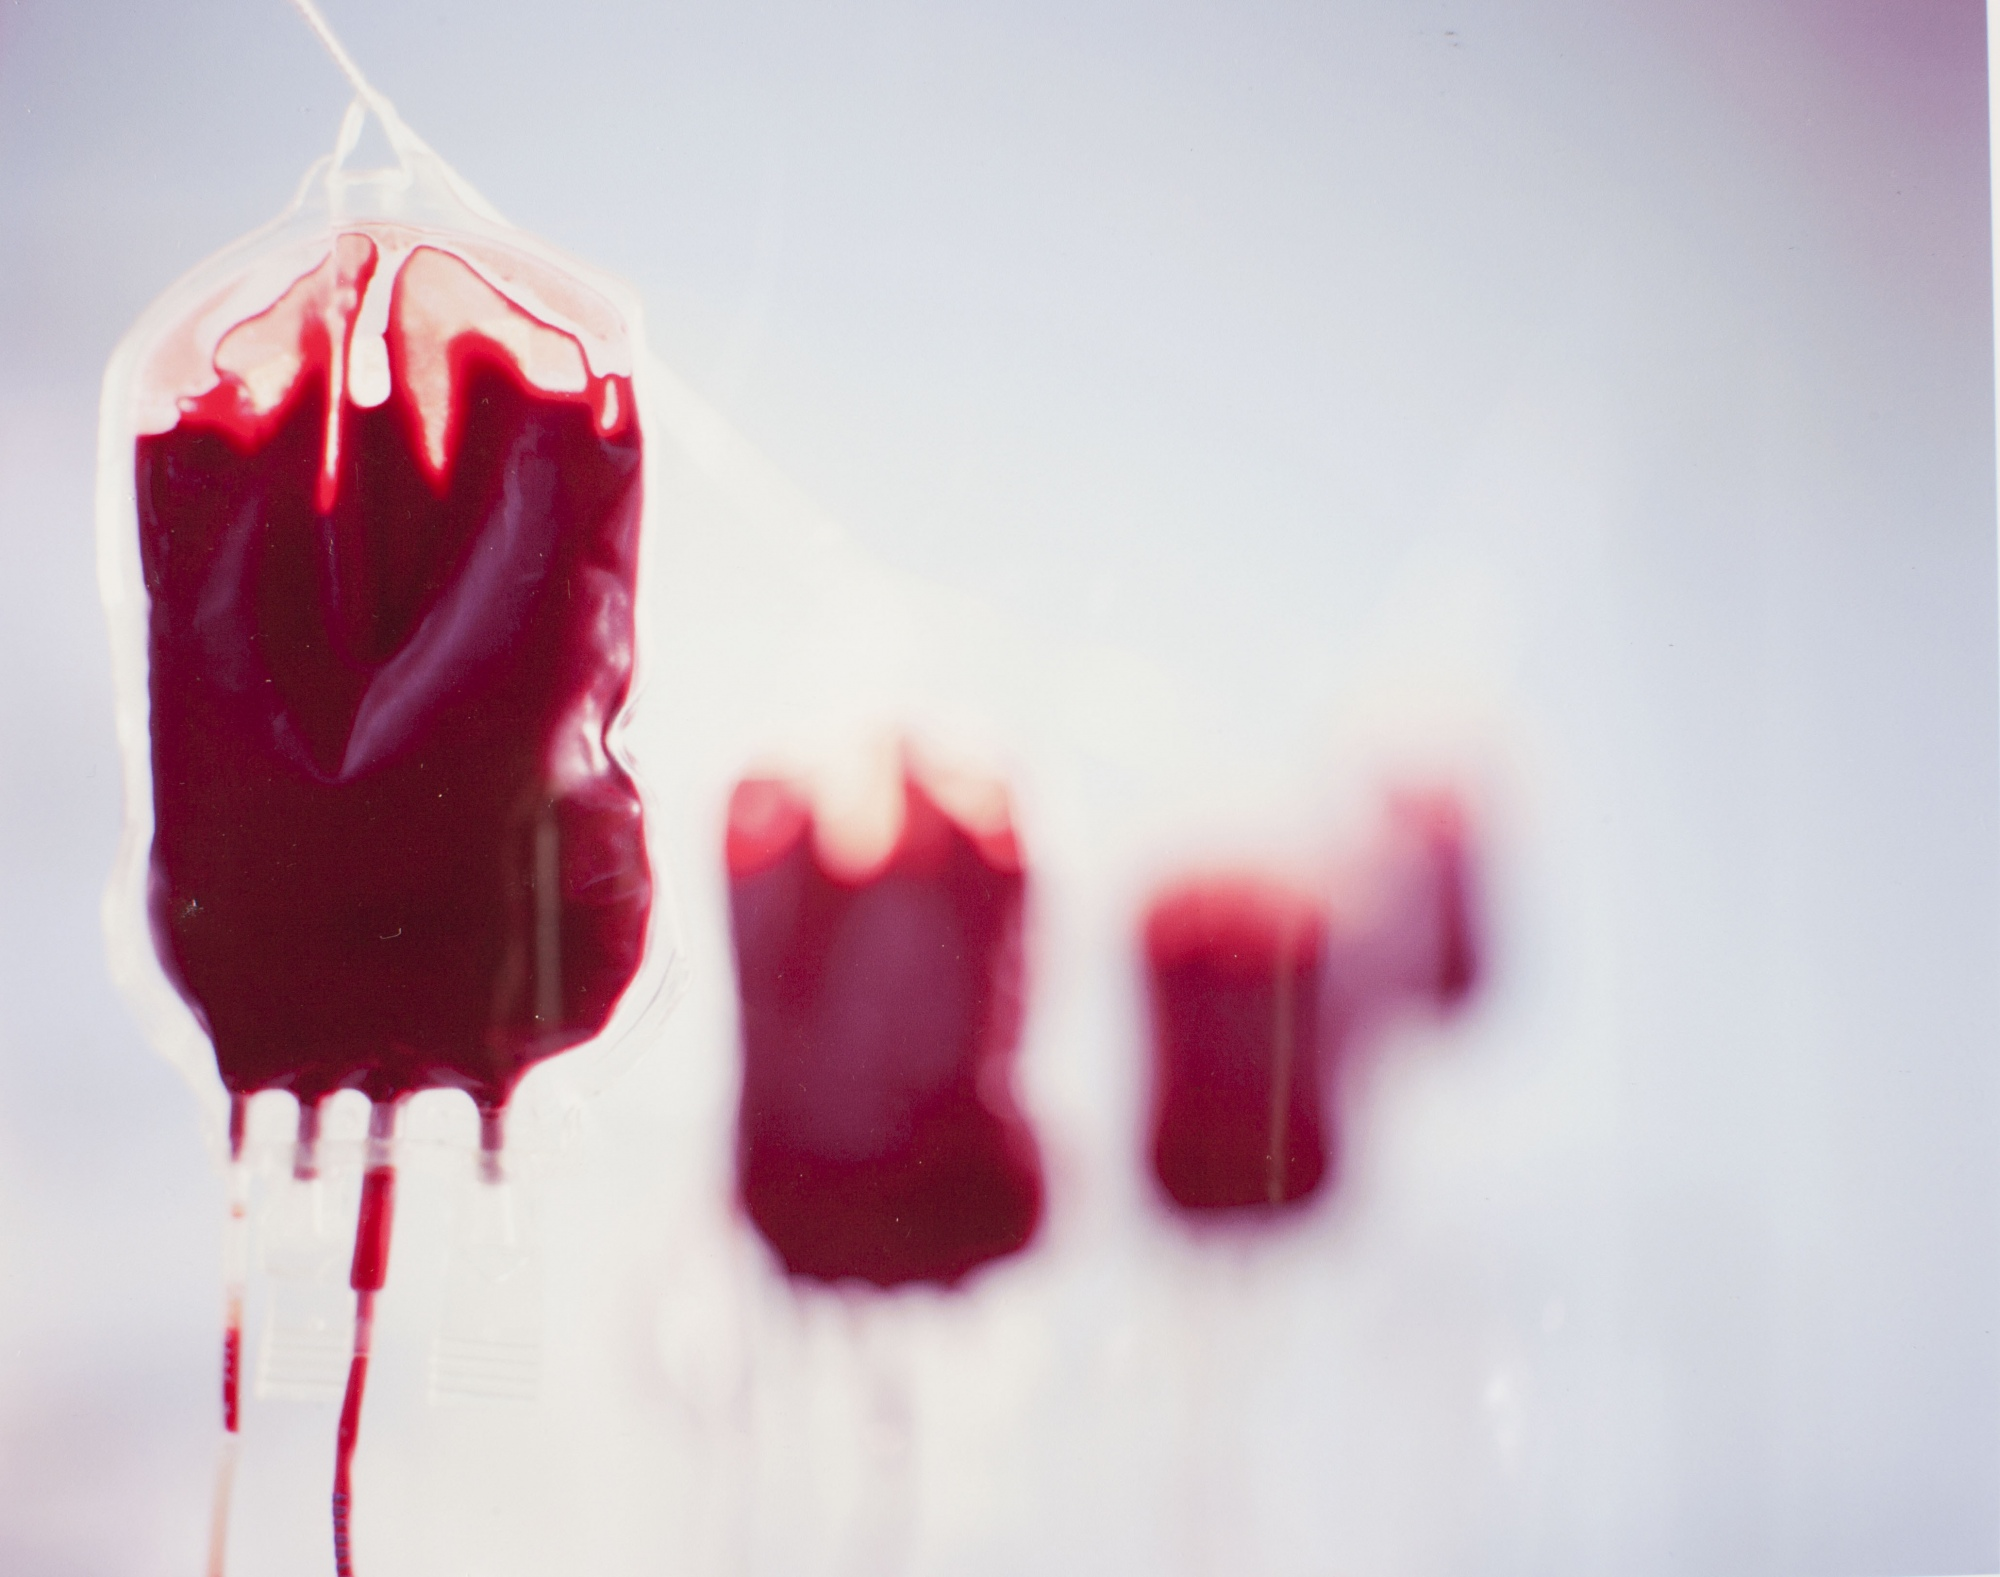 Hanging Blood. Advertising. Getty Images, stock photography.  Photographicworkshopslondon.com, Learning Photography, Film photography courses London